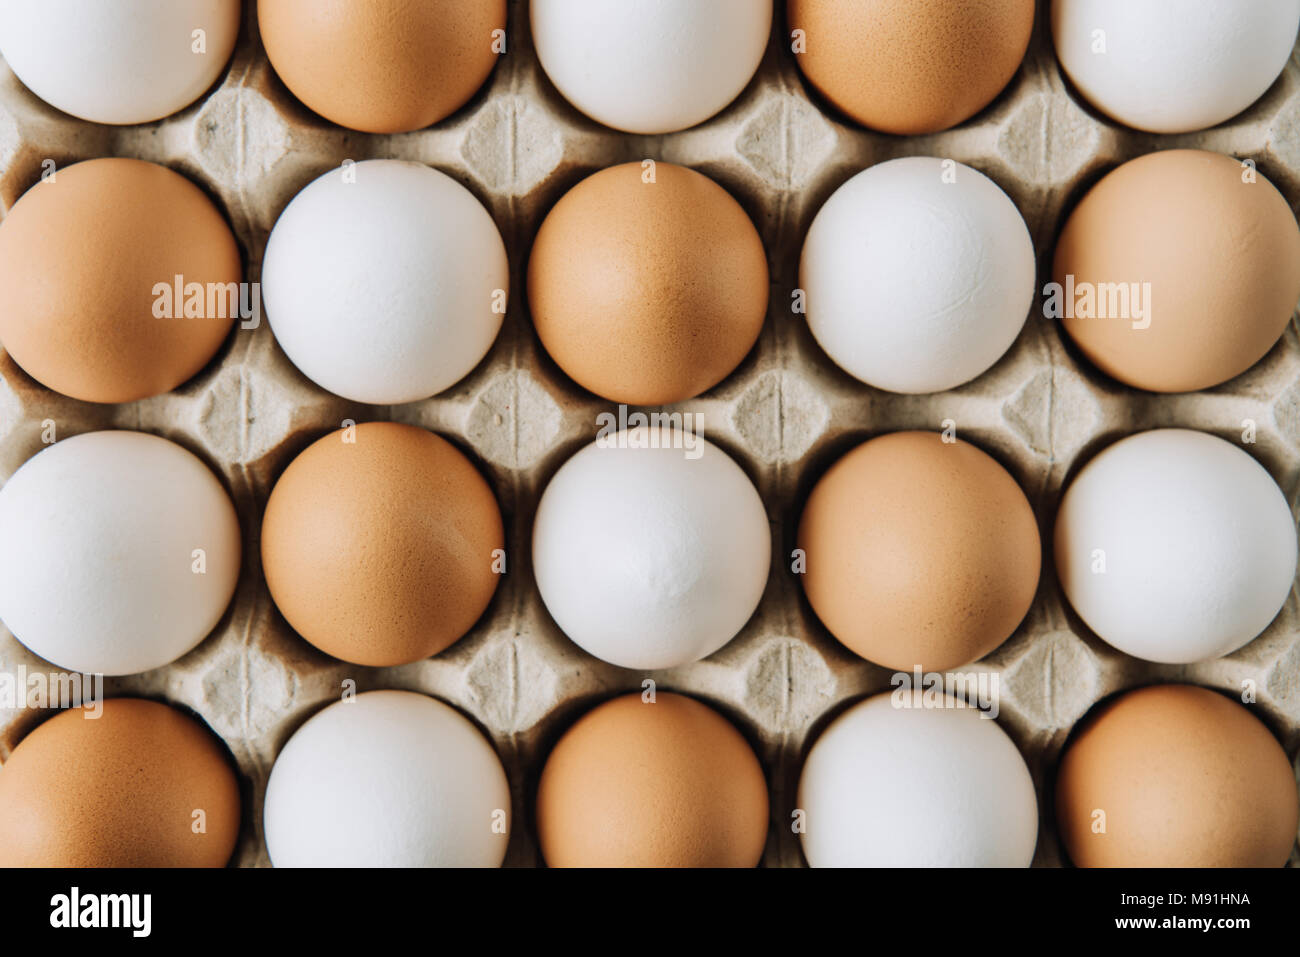 white and brown eggs laying in egg